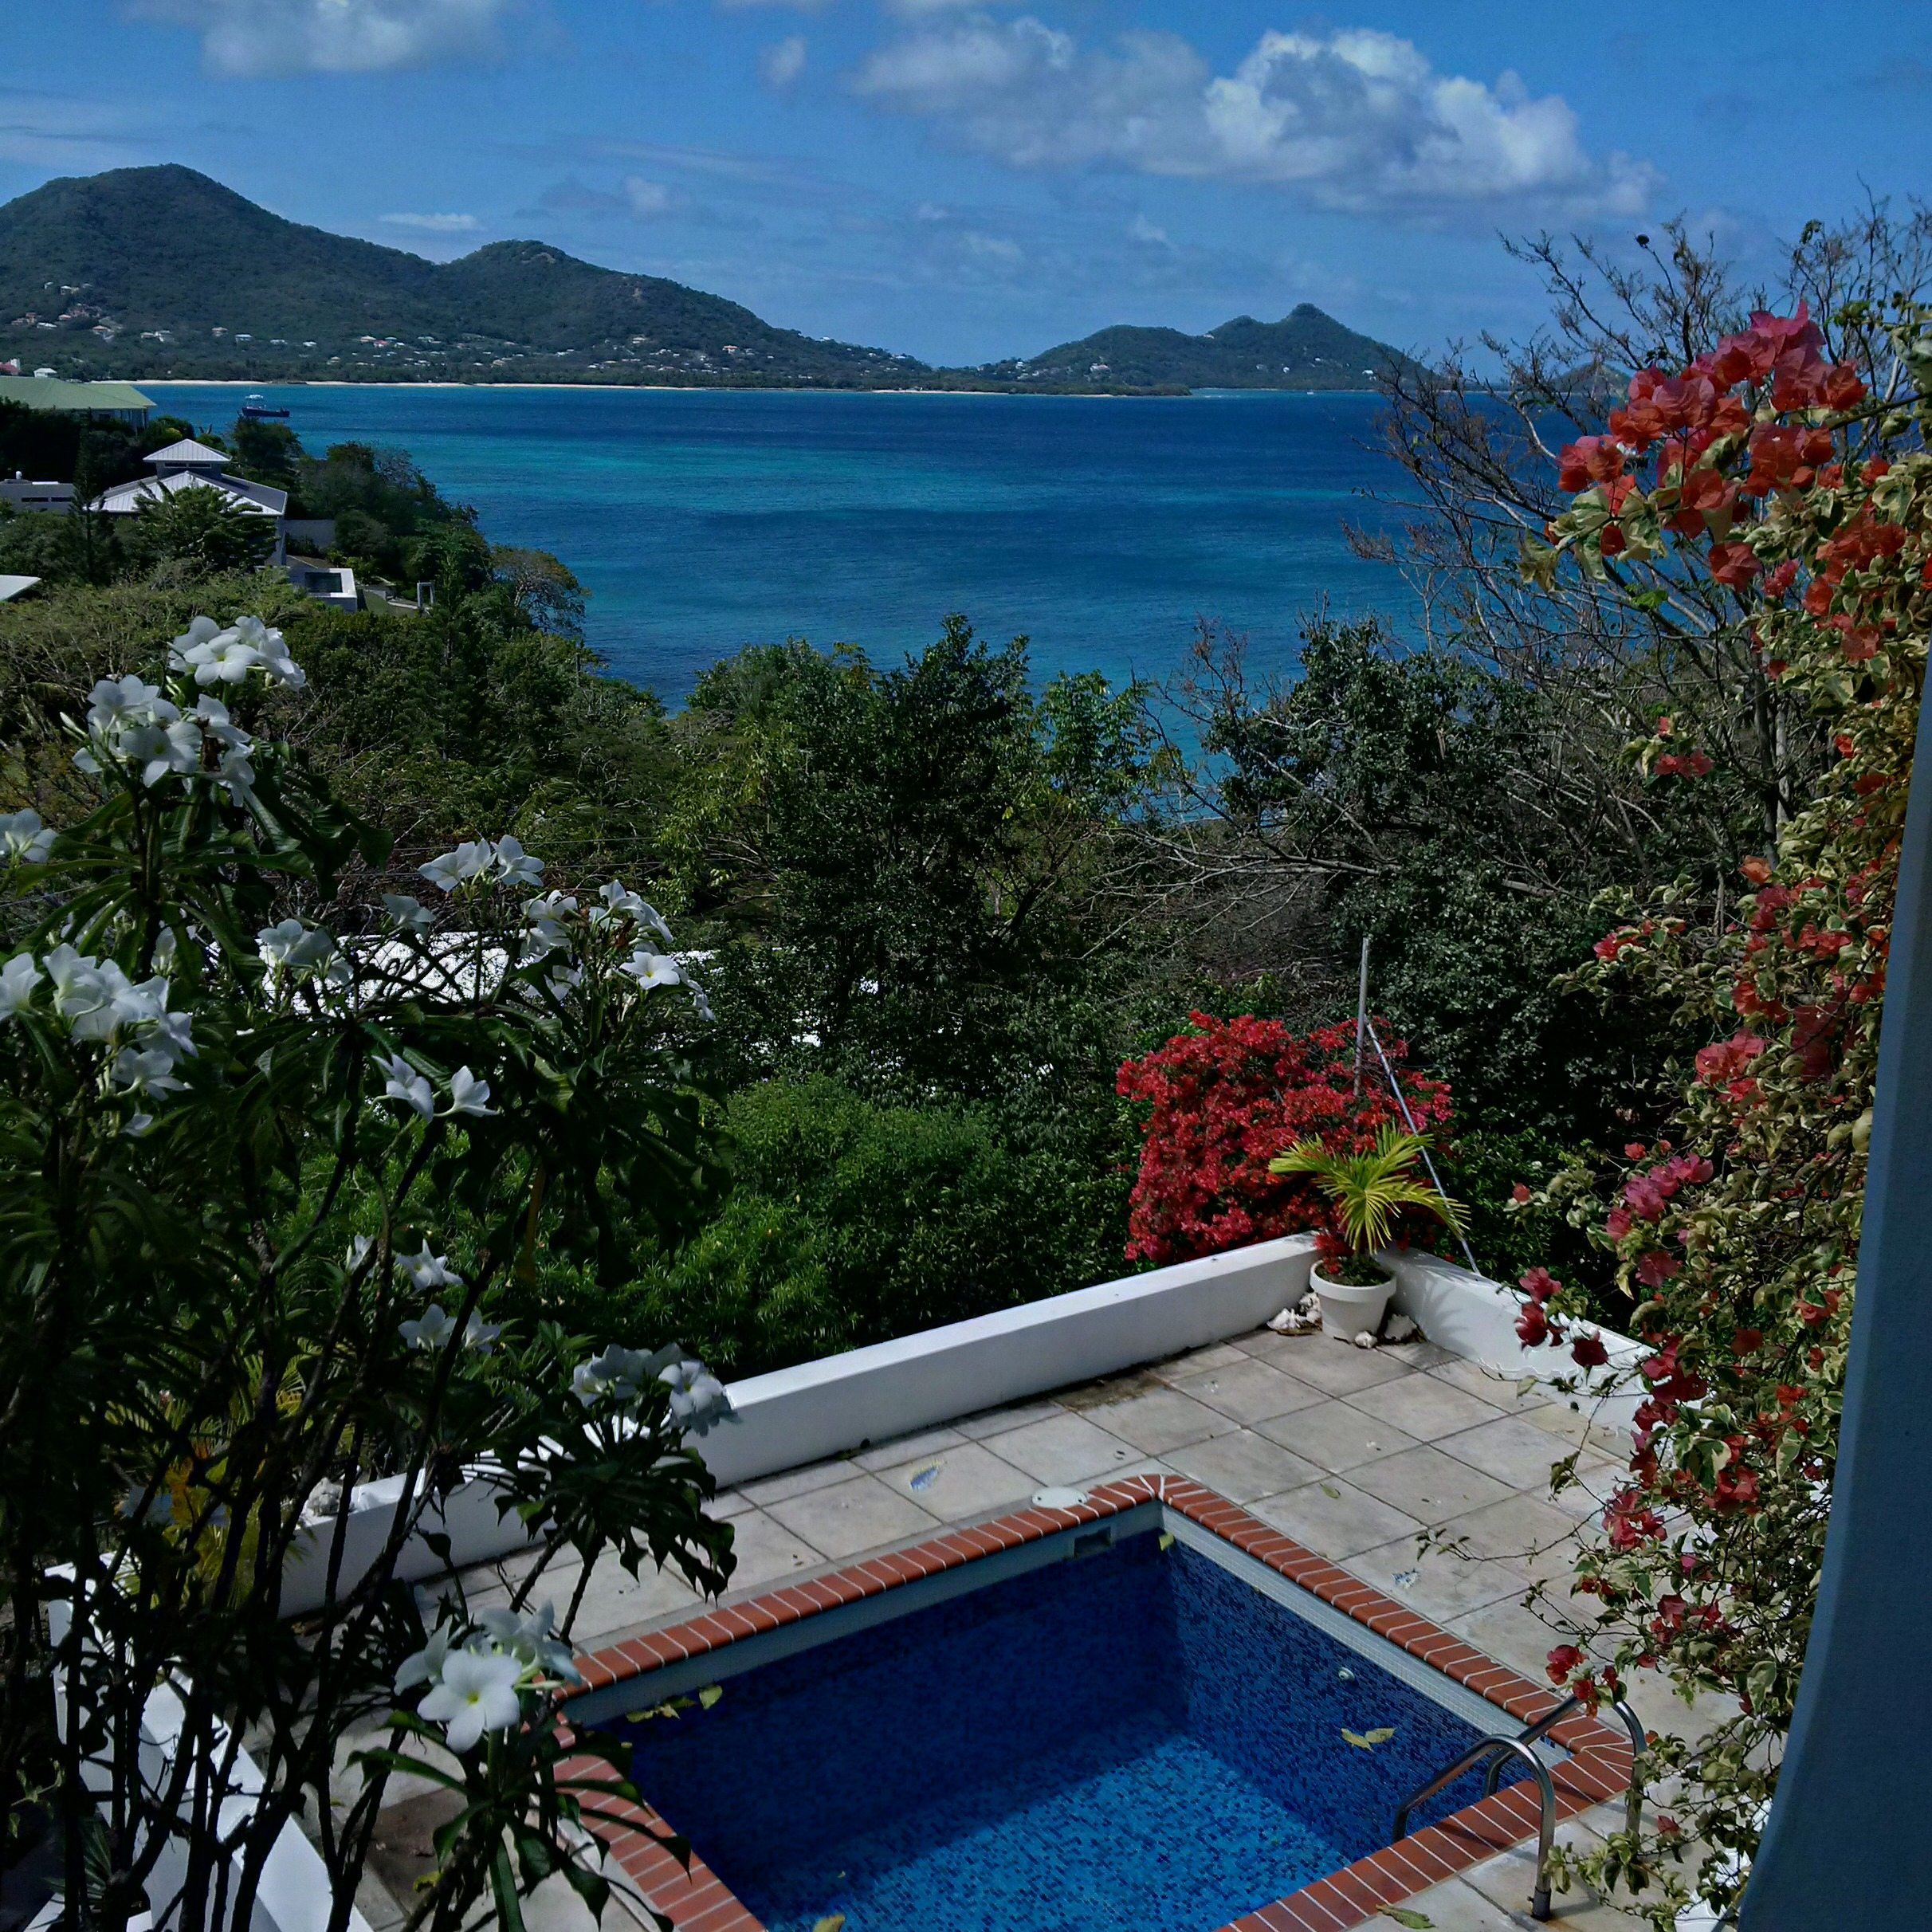 View from our bedroom in Carriacou